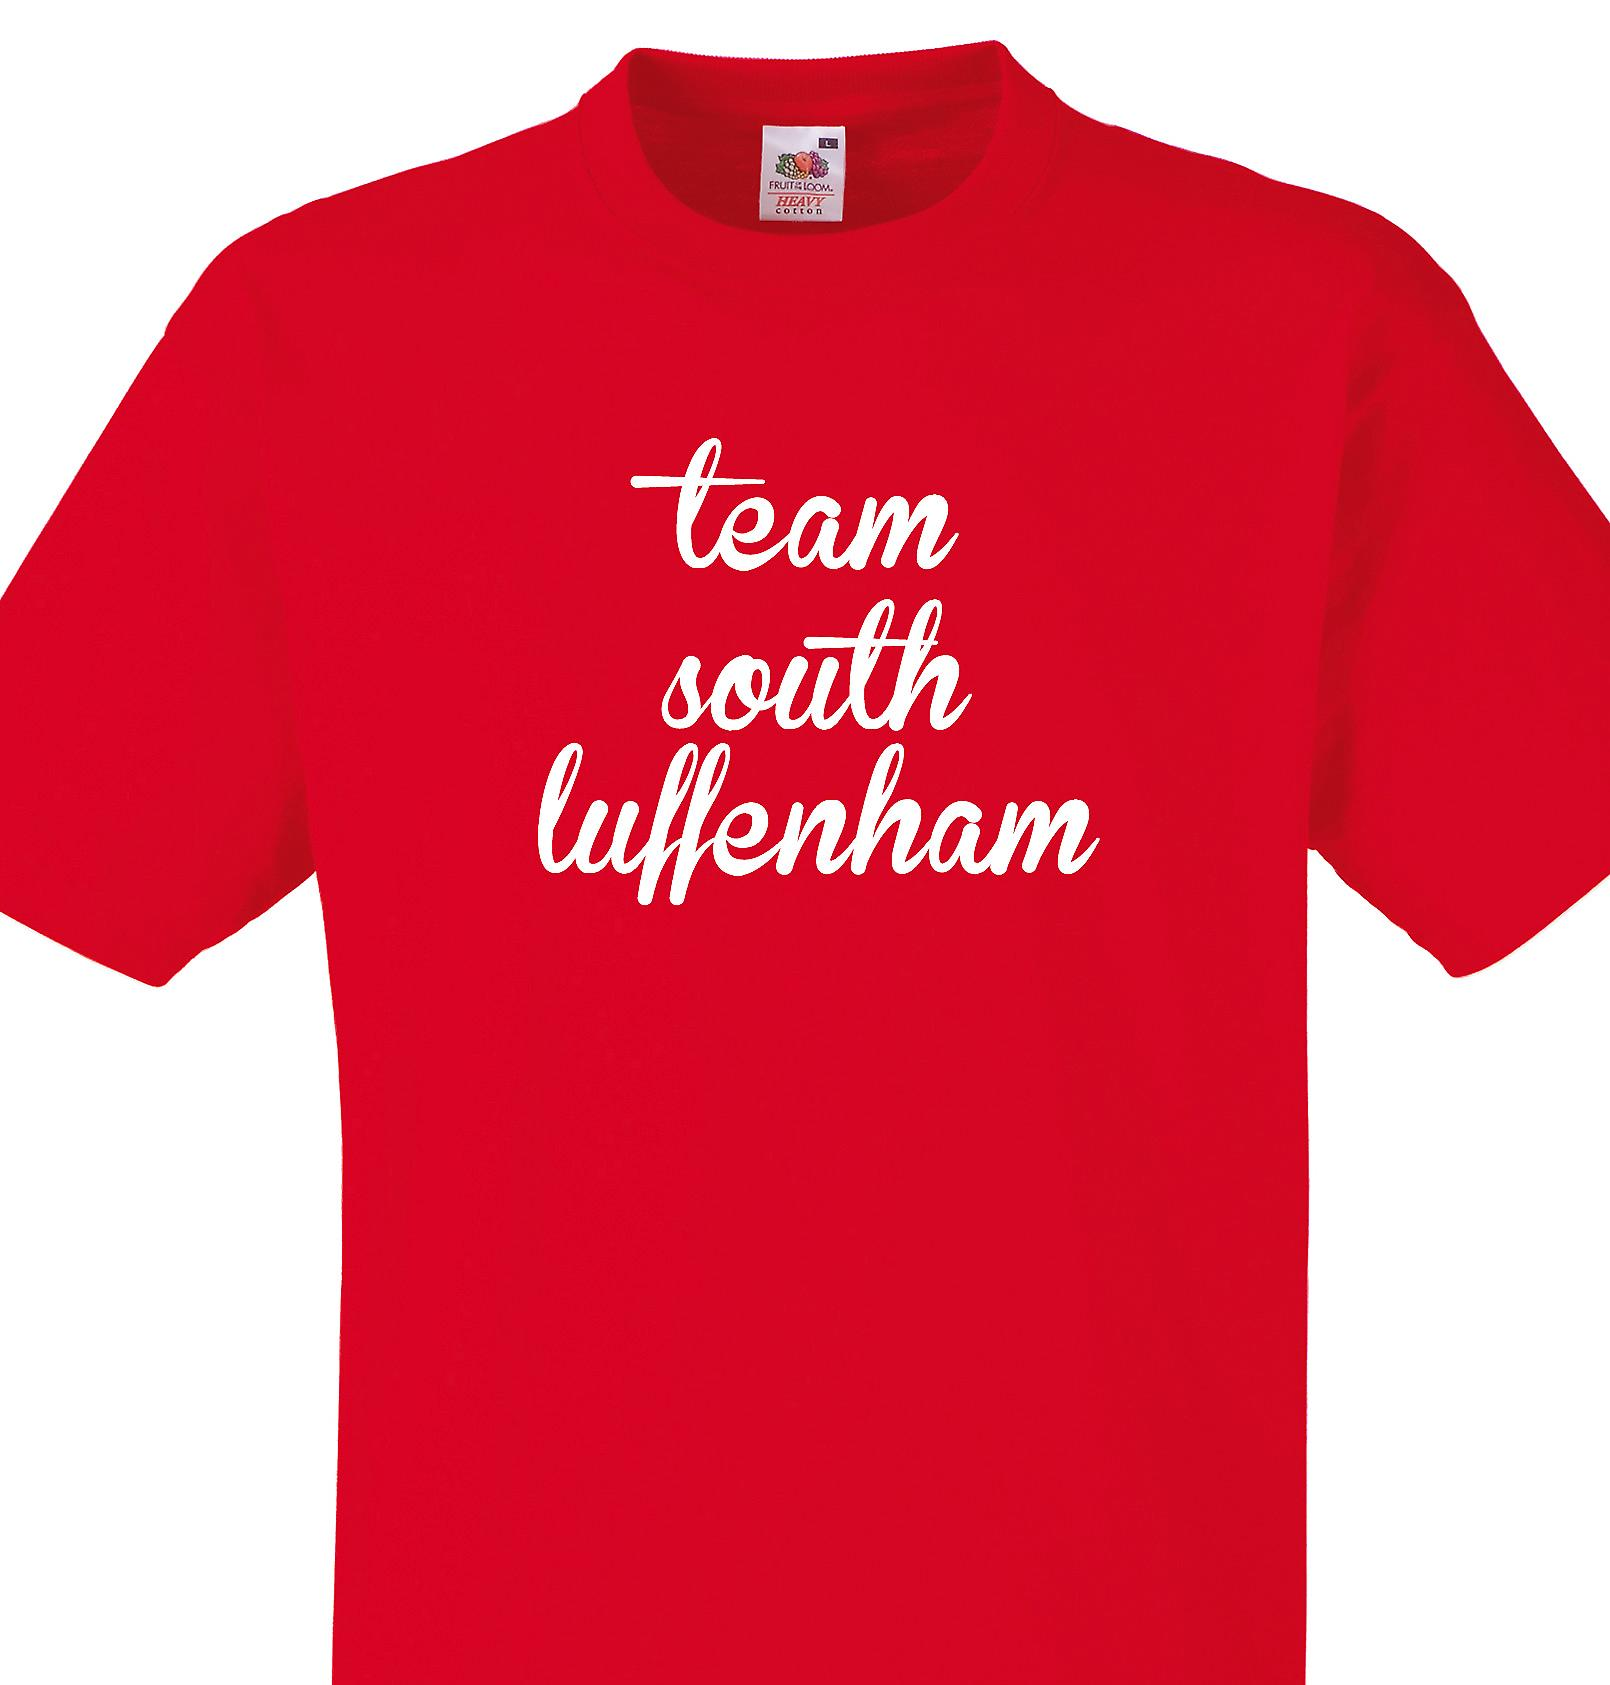 Team South luffenham Red T shirt